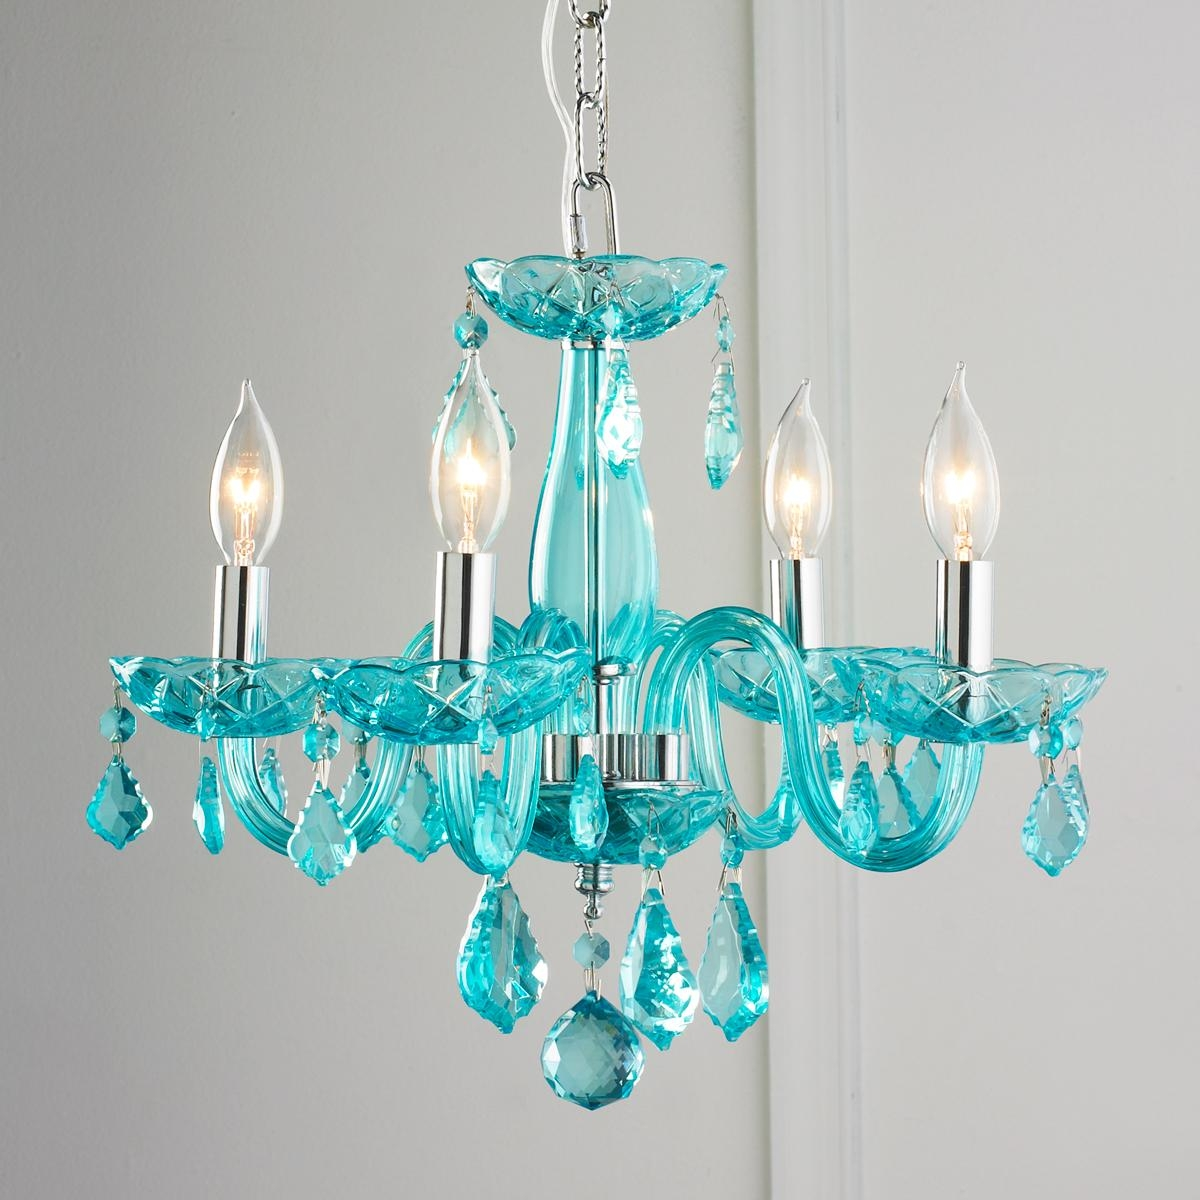 Color Crystal Mini Chandelier See Best Ideas About Mini In Small Glass Chandeliers (View 11 of 12)